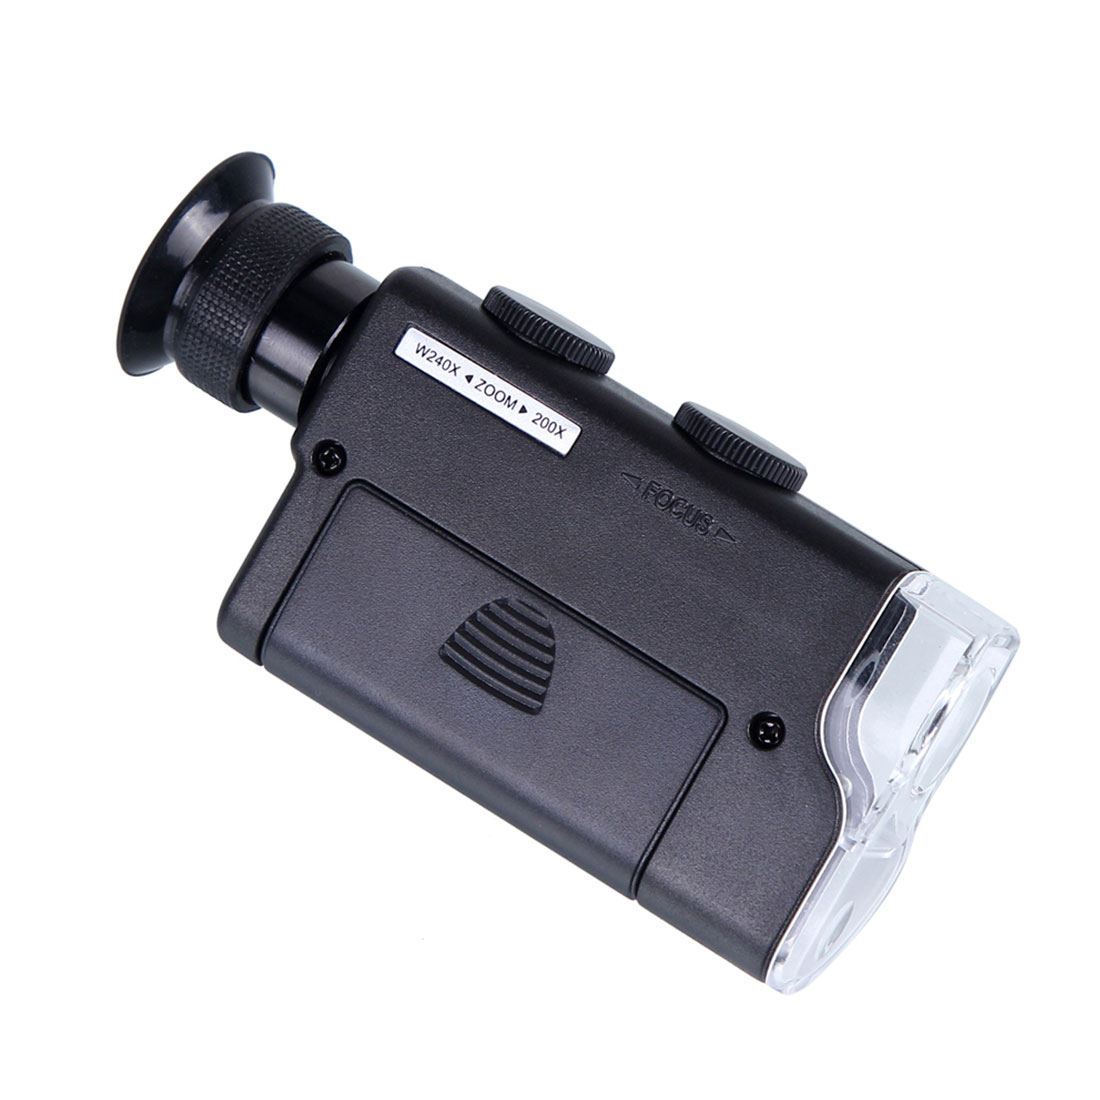 Hot!Mini Portable Microscope Pocket 200X~240X Handheld LED Lamp Light Loupe Zoom Magnifier Magnifying Glass Pocket Lens